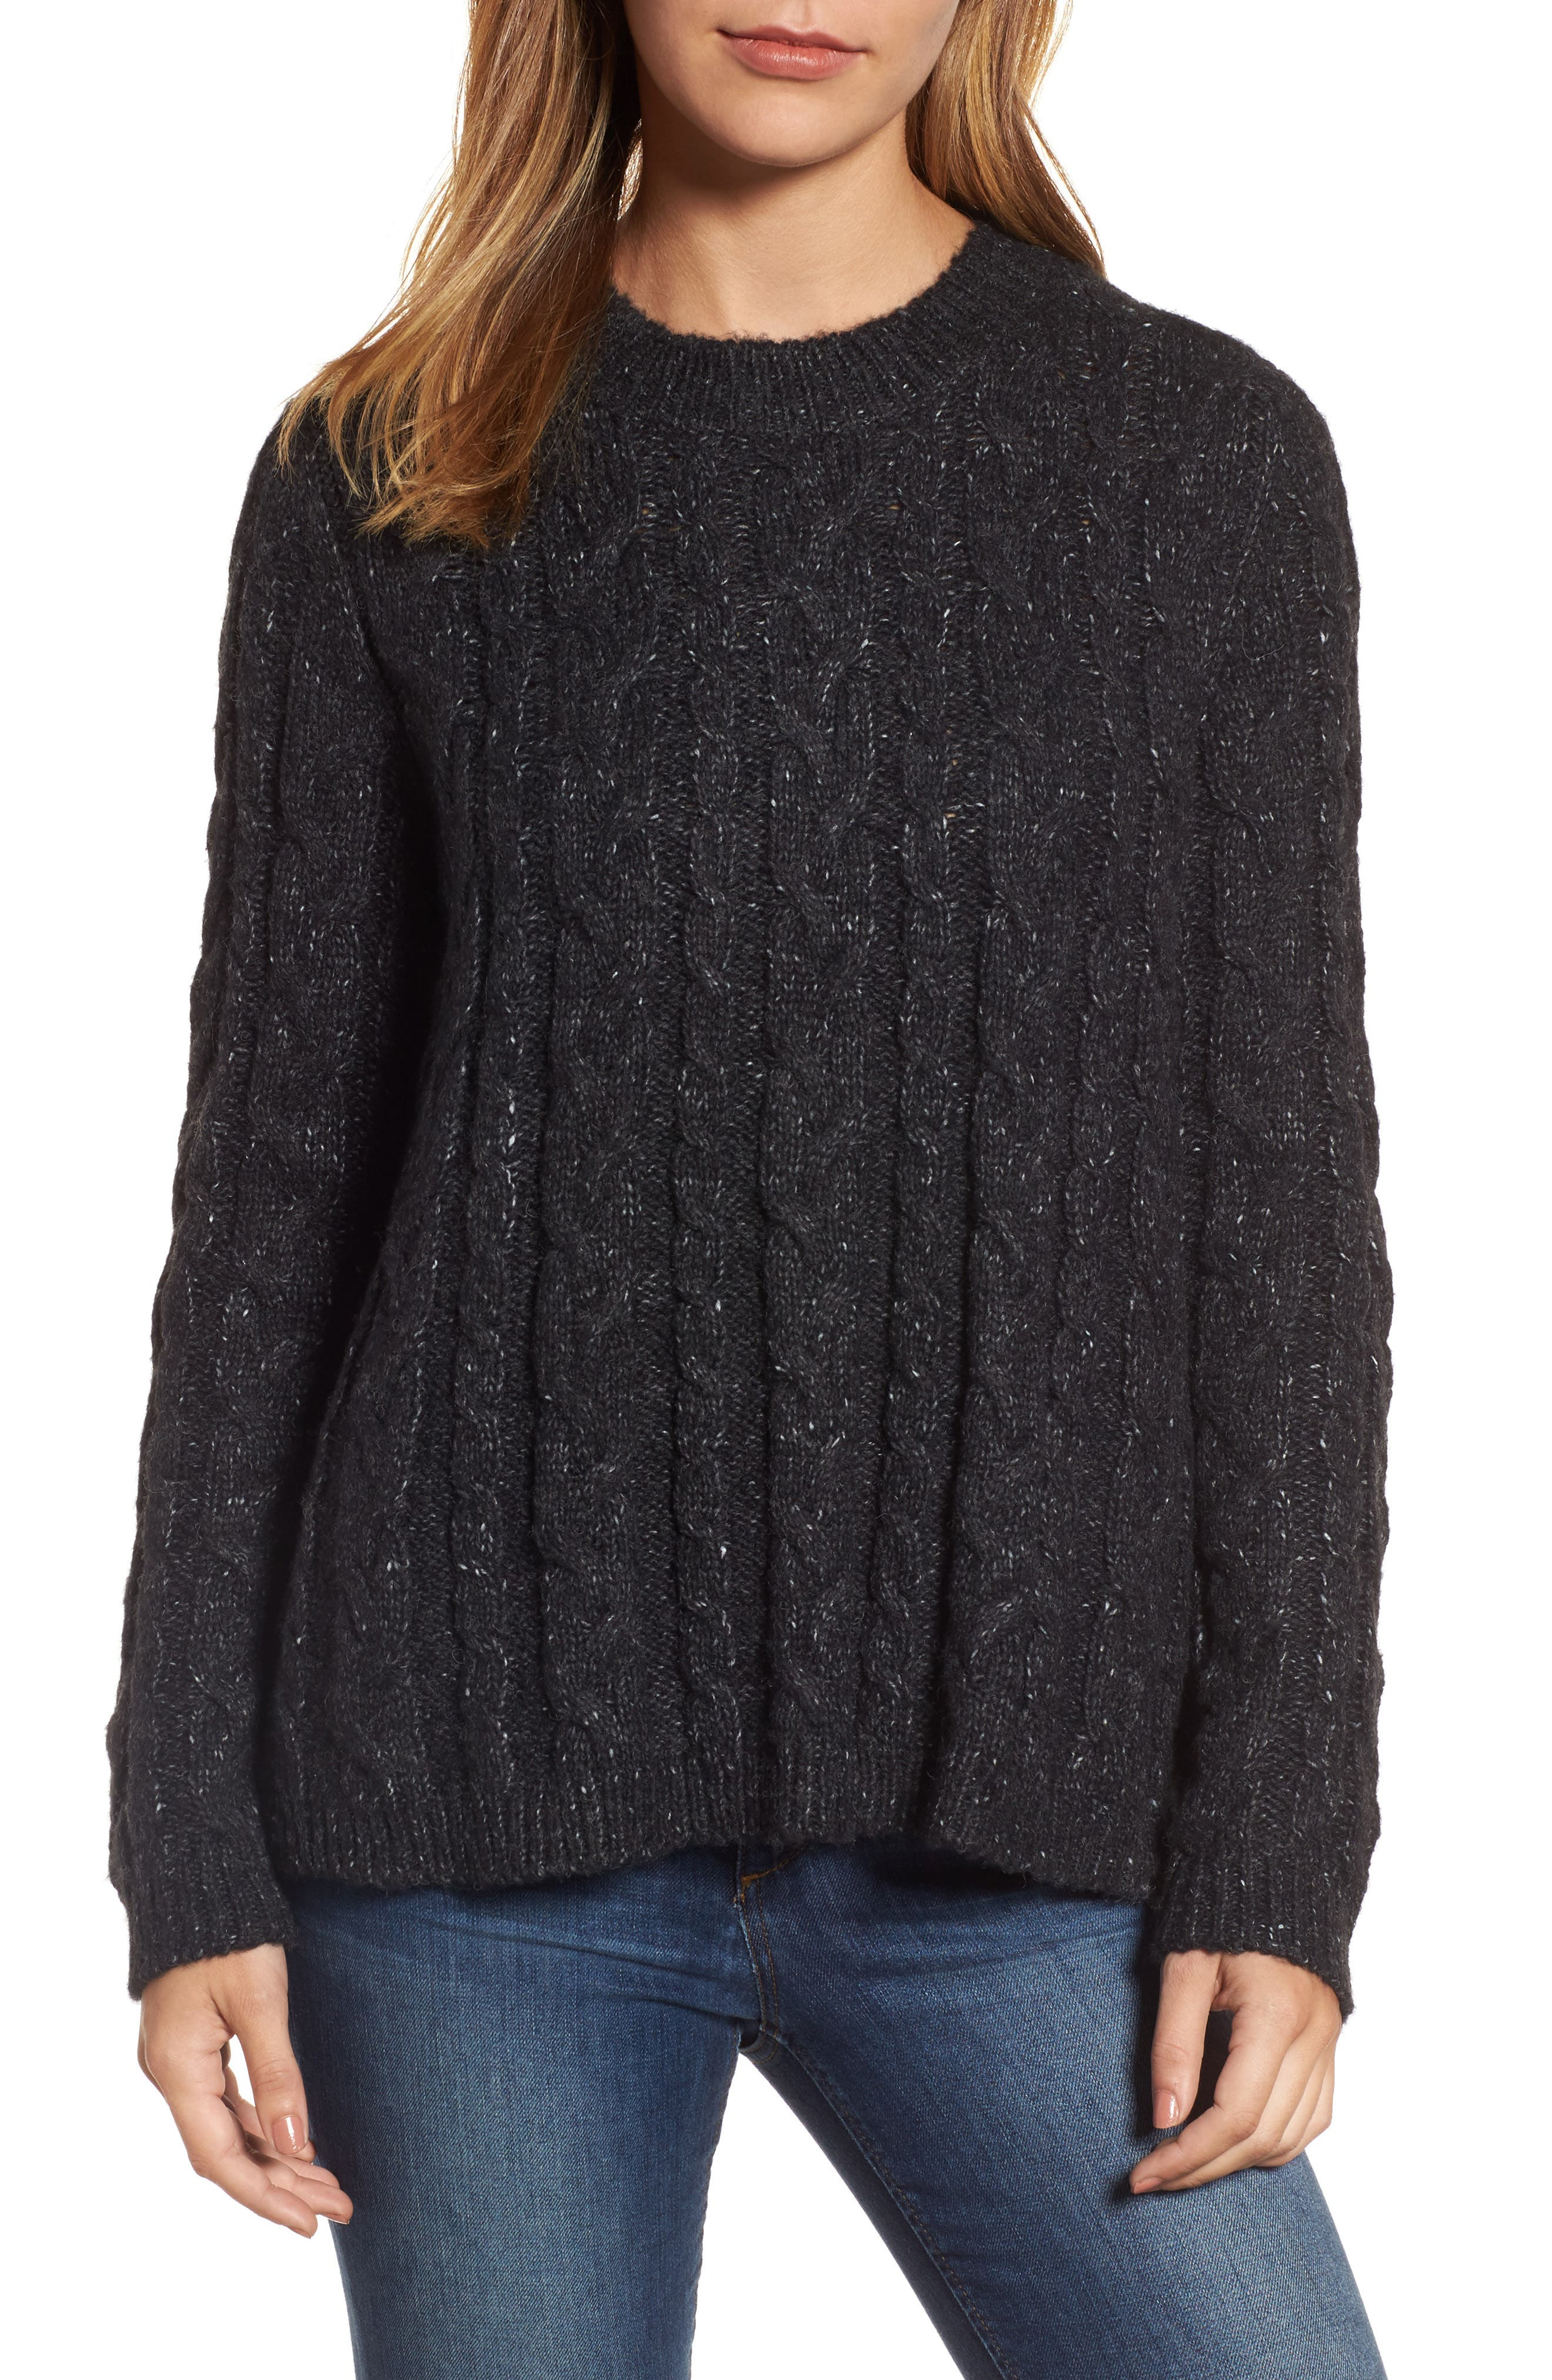 Alternate Image 1 Selected - Press Trapeze Fit Cable Knit Sweater